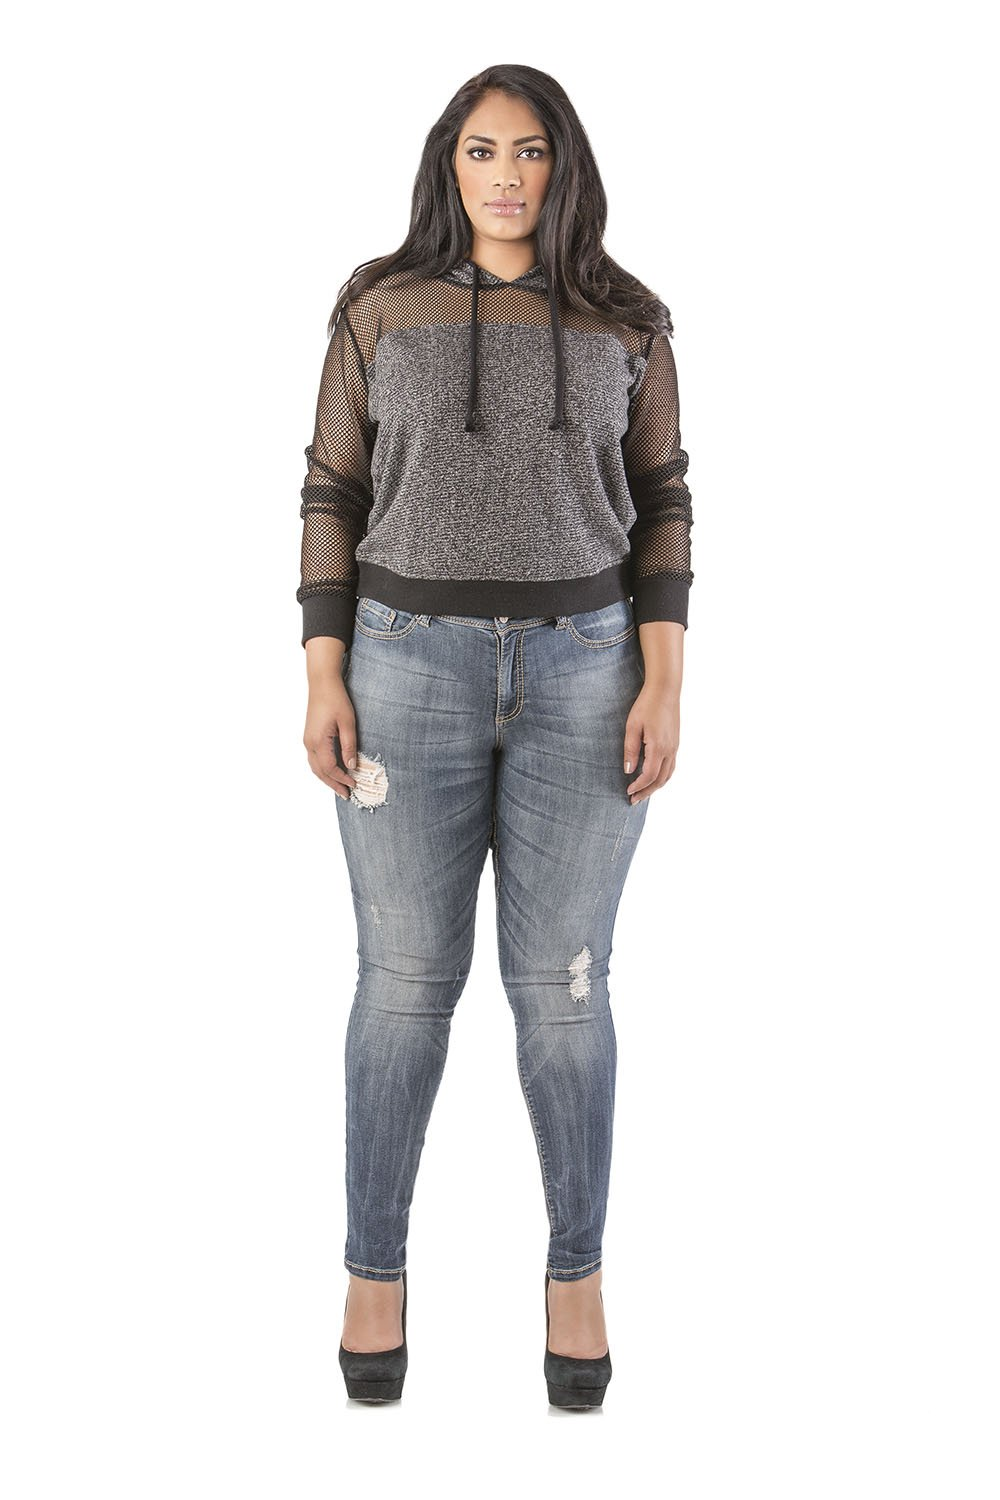 Poetic Justice Plus Size Women's Curvy Fit Blue Vintage Wash Destroyed Skinny Jeans Size 20 x 32Length by Poetic Justice (Image #3)